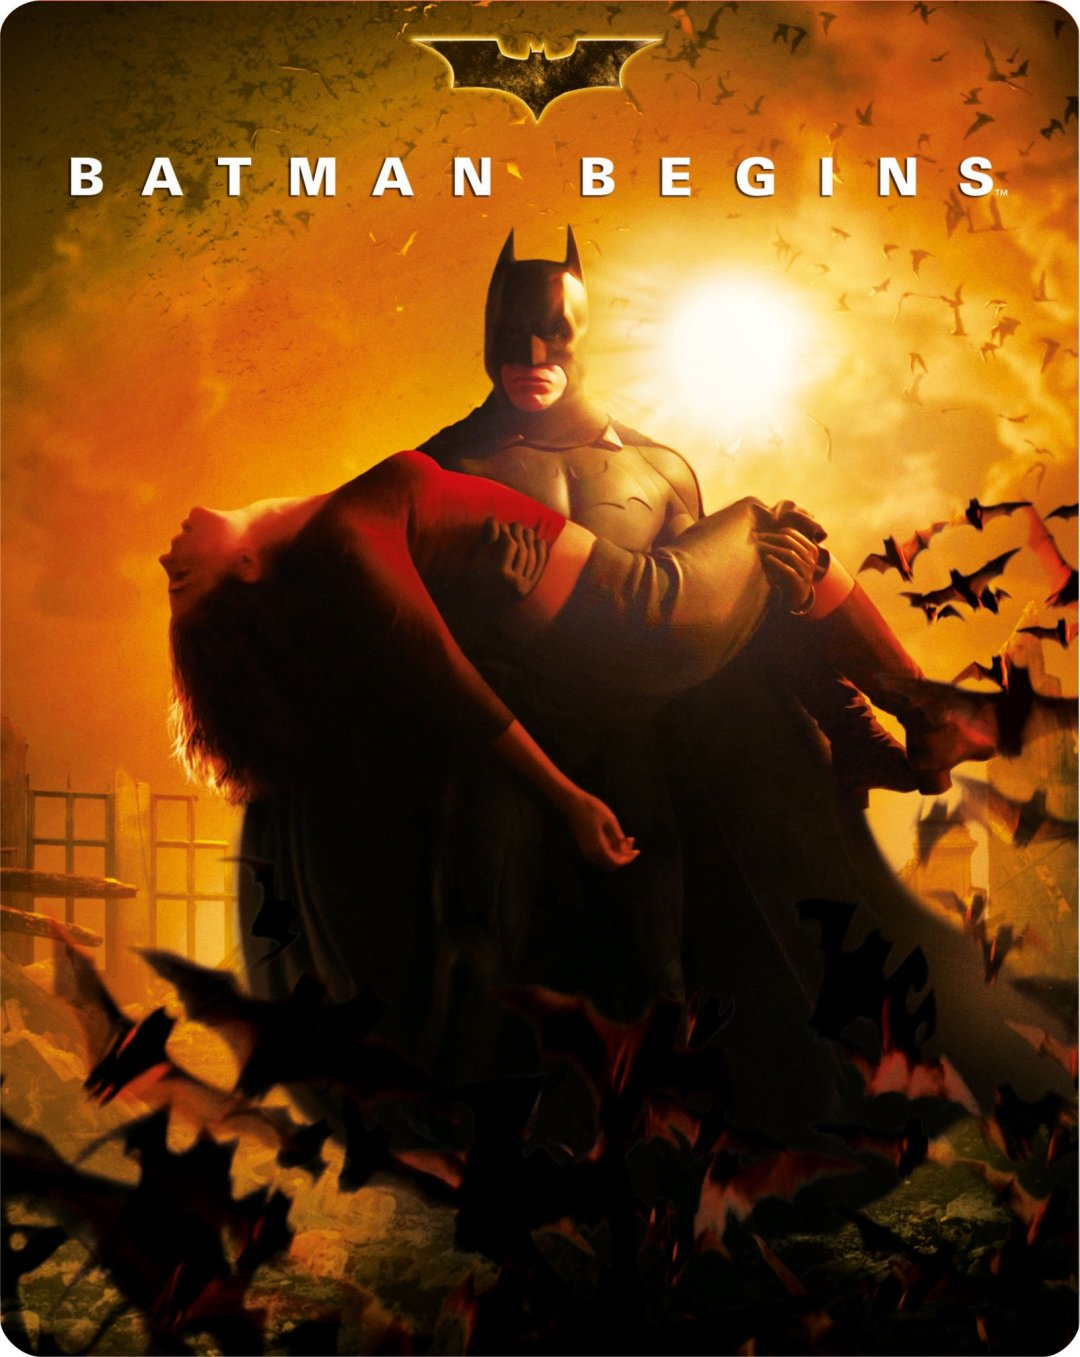 Batman Begins  poster is copied by Ra One